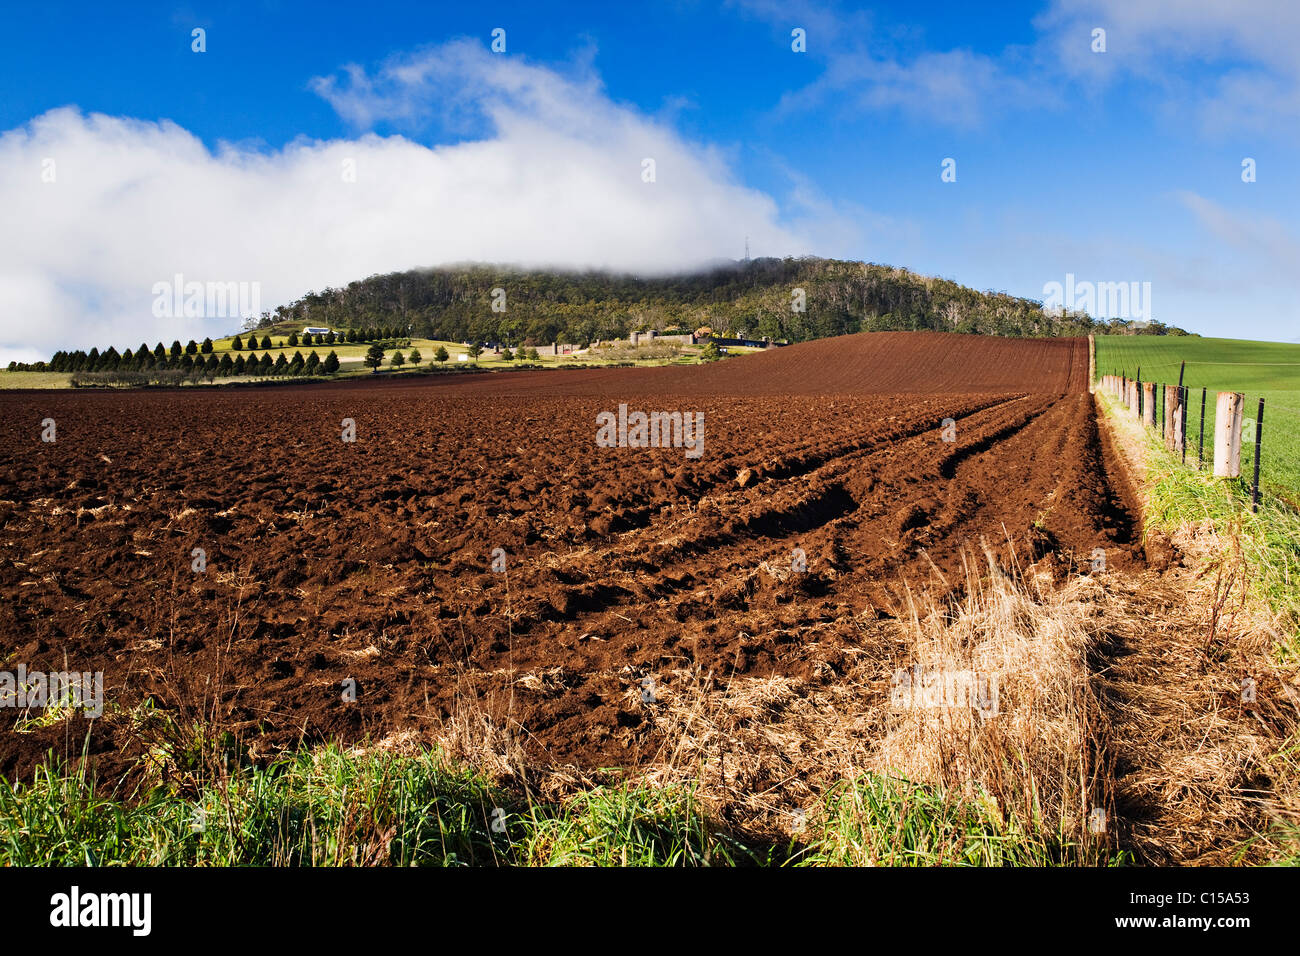 A freshly plowed field at Warrenheip which is located near the regional city of Ballarat in Victoria Australia. - Stock Image